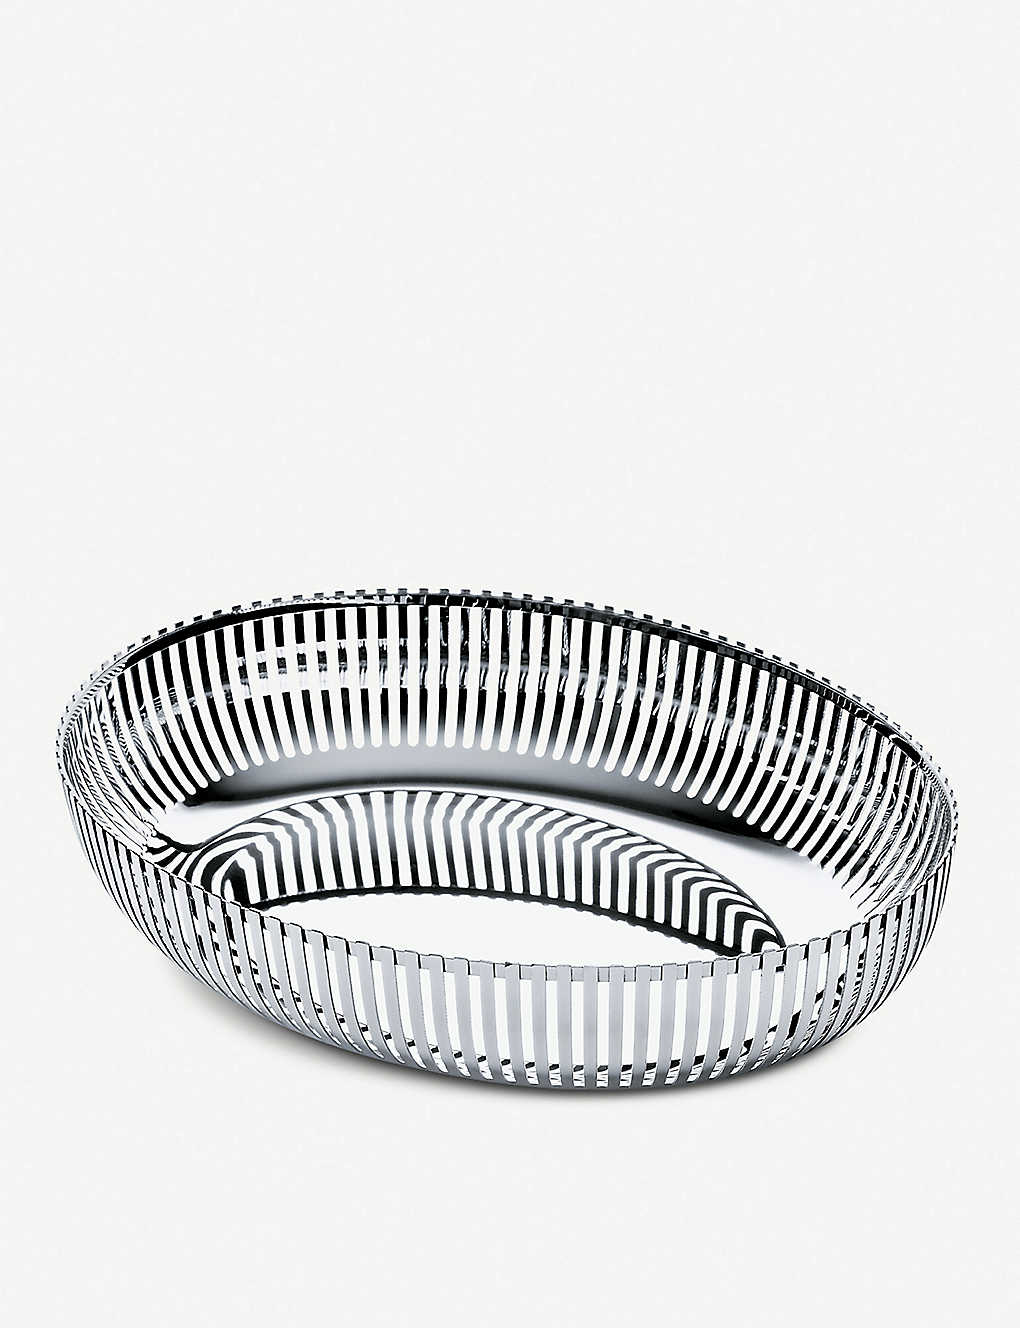 Pierre Charpin stainless steel basket 20cm